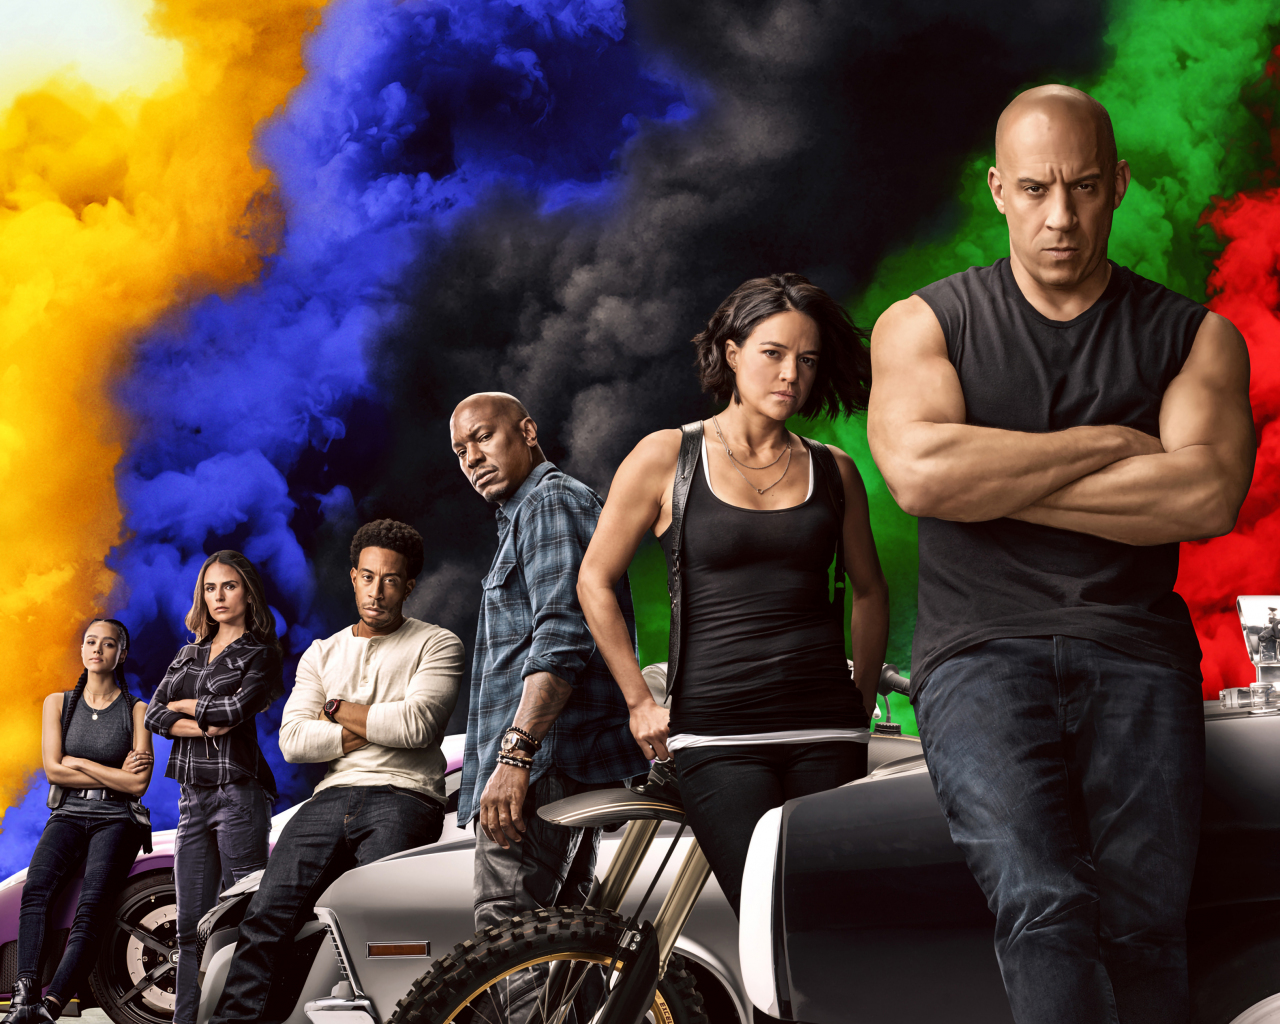 Download 1280x1024 Wallpaper Movie 2020 Cast Fast Furious 9